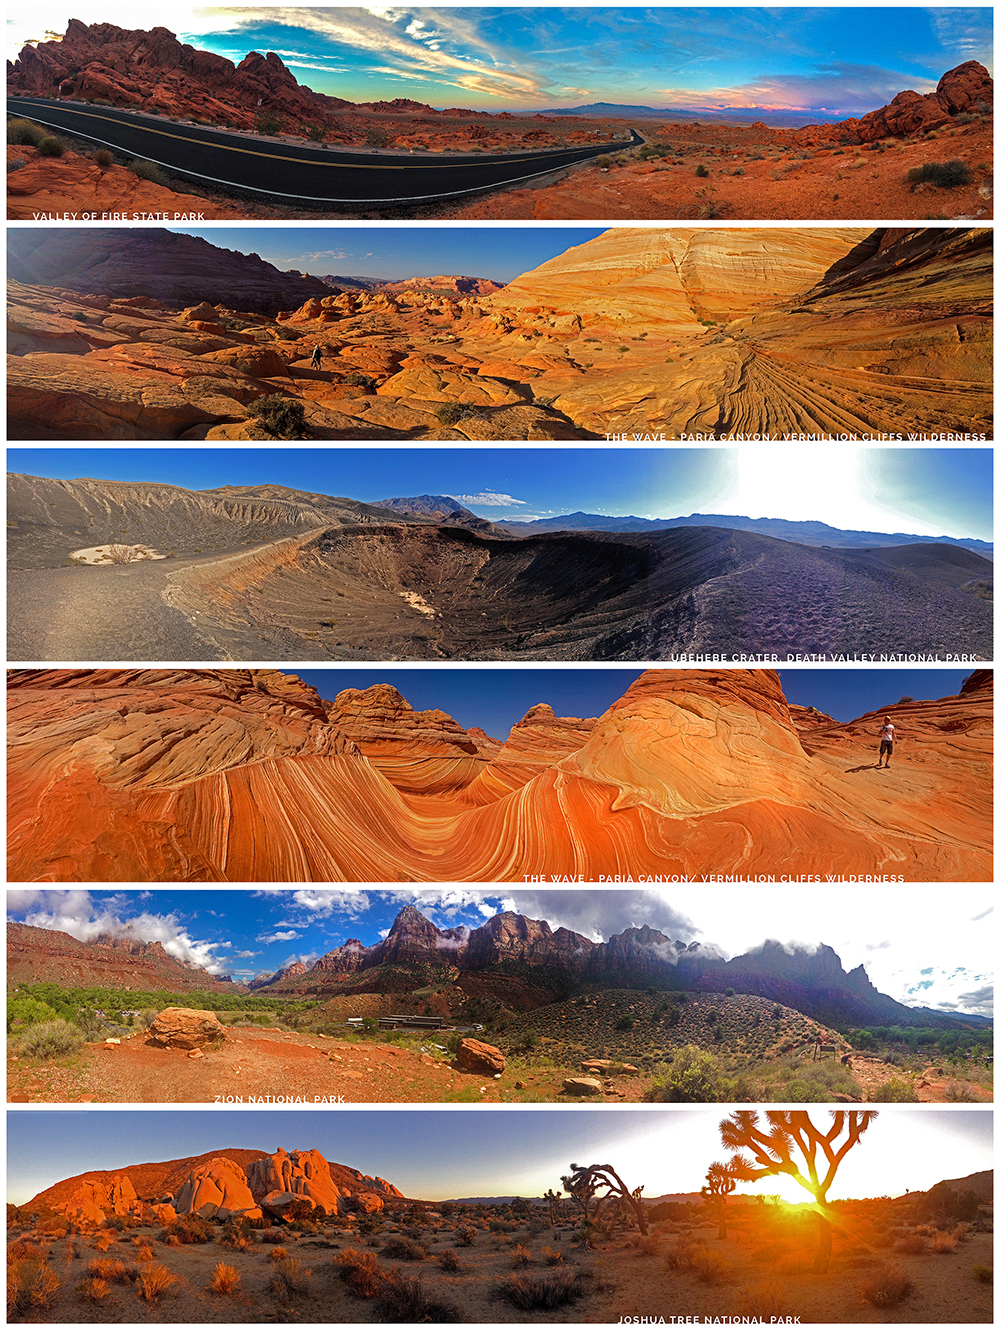 American Southwest 2014 Panorama Poster_02